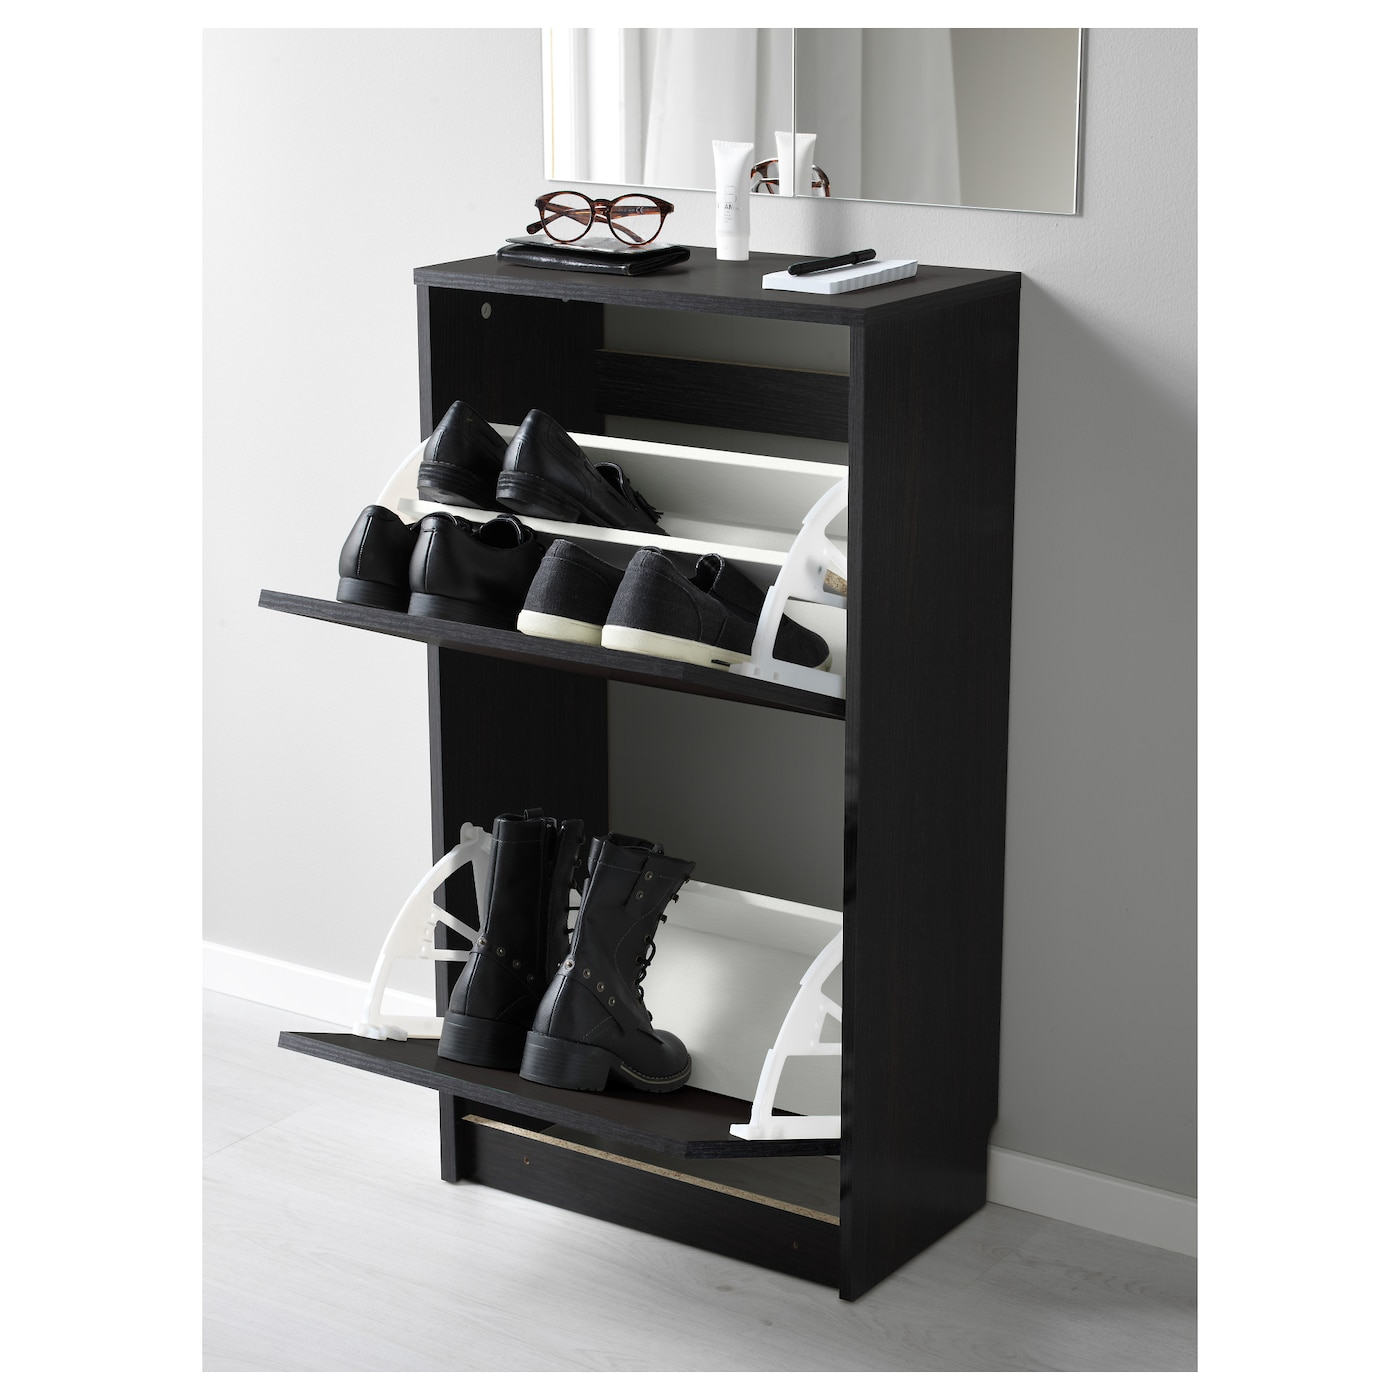 Ikea Shoe Drawers Bissa Shoe Cabinet With 2 Compartments Black Brown 49x93 Cm Ikea